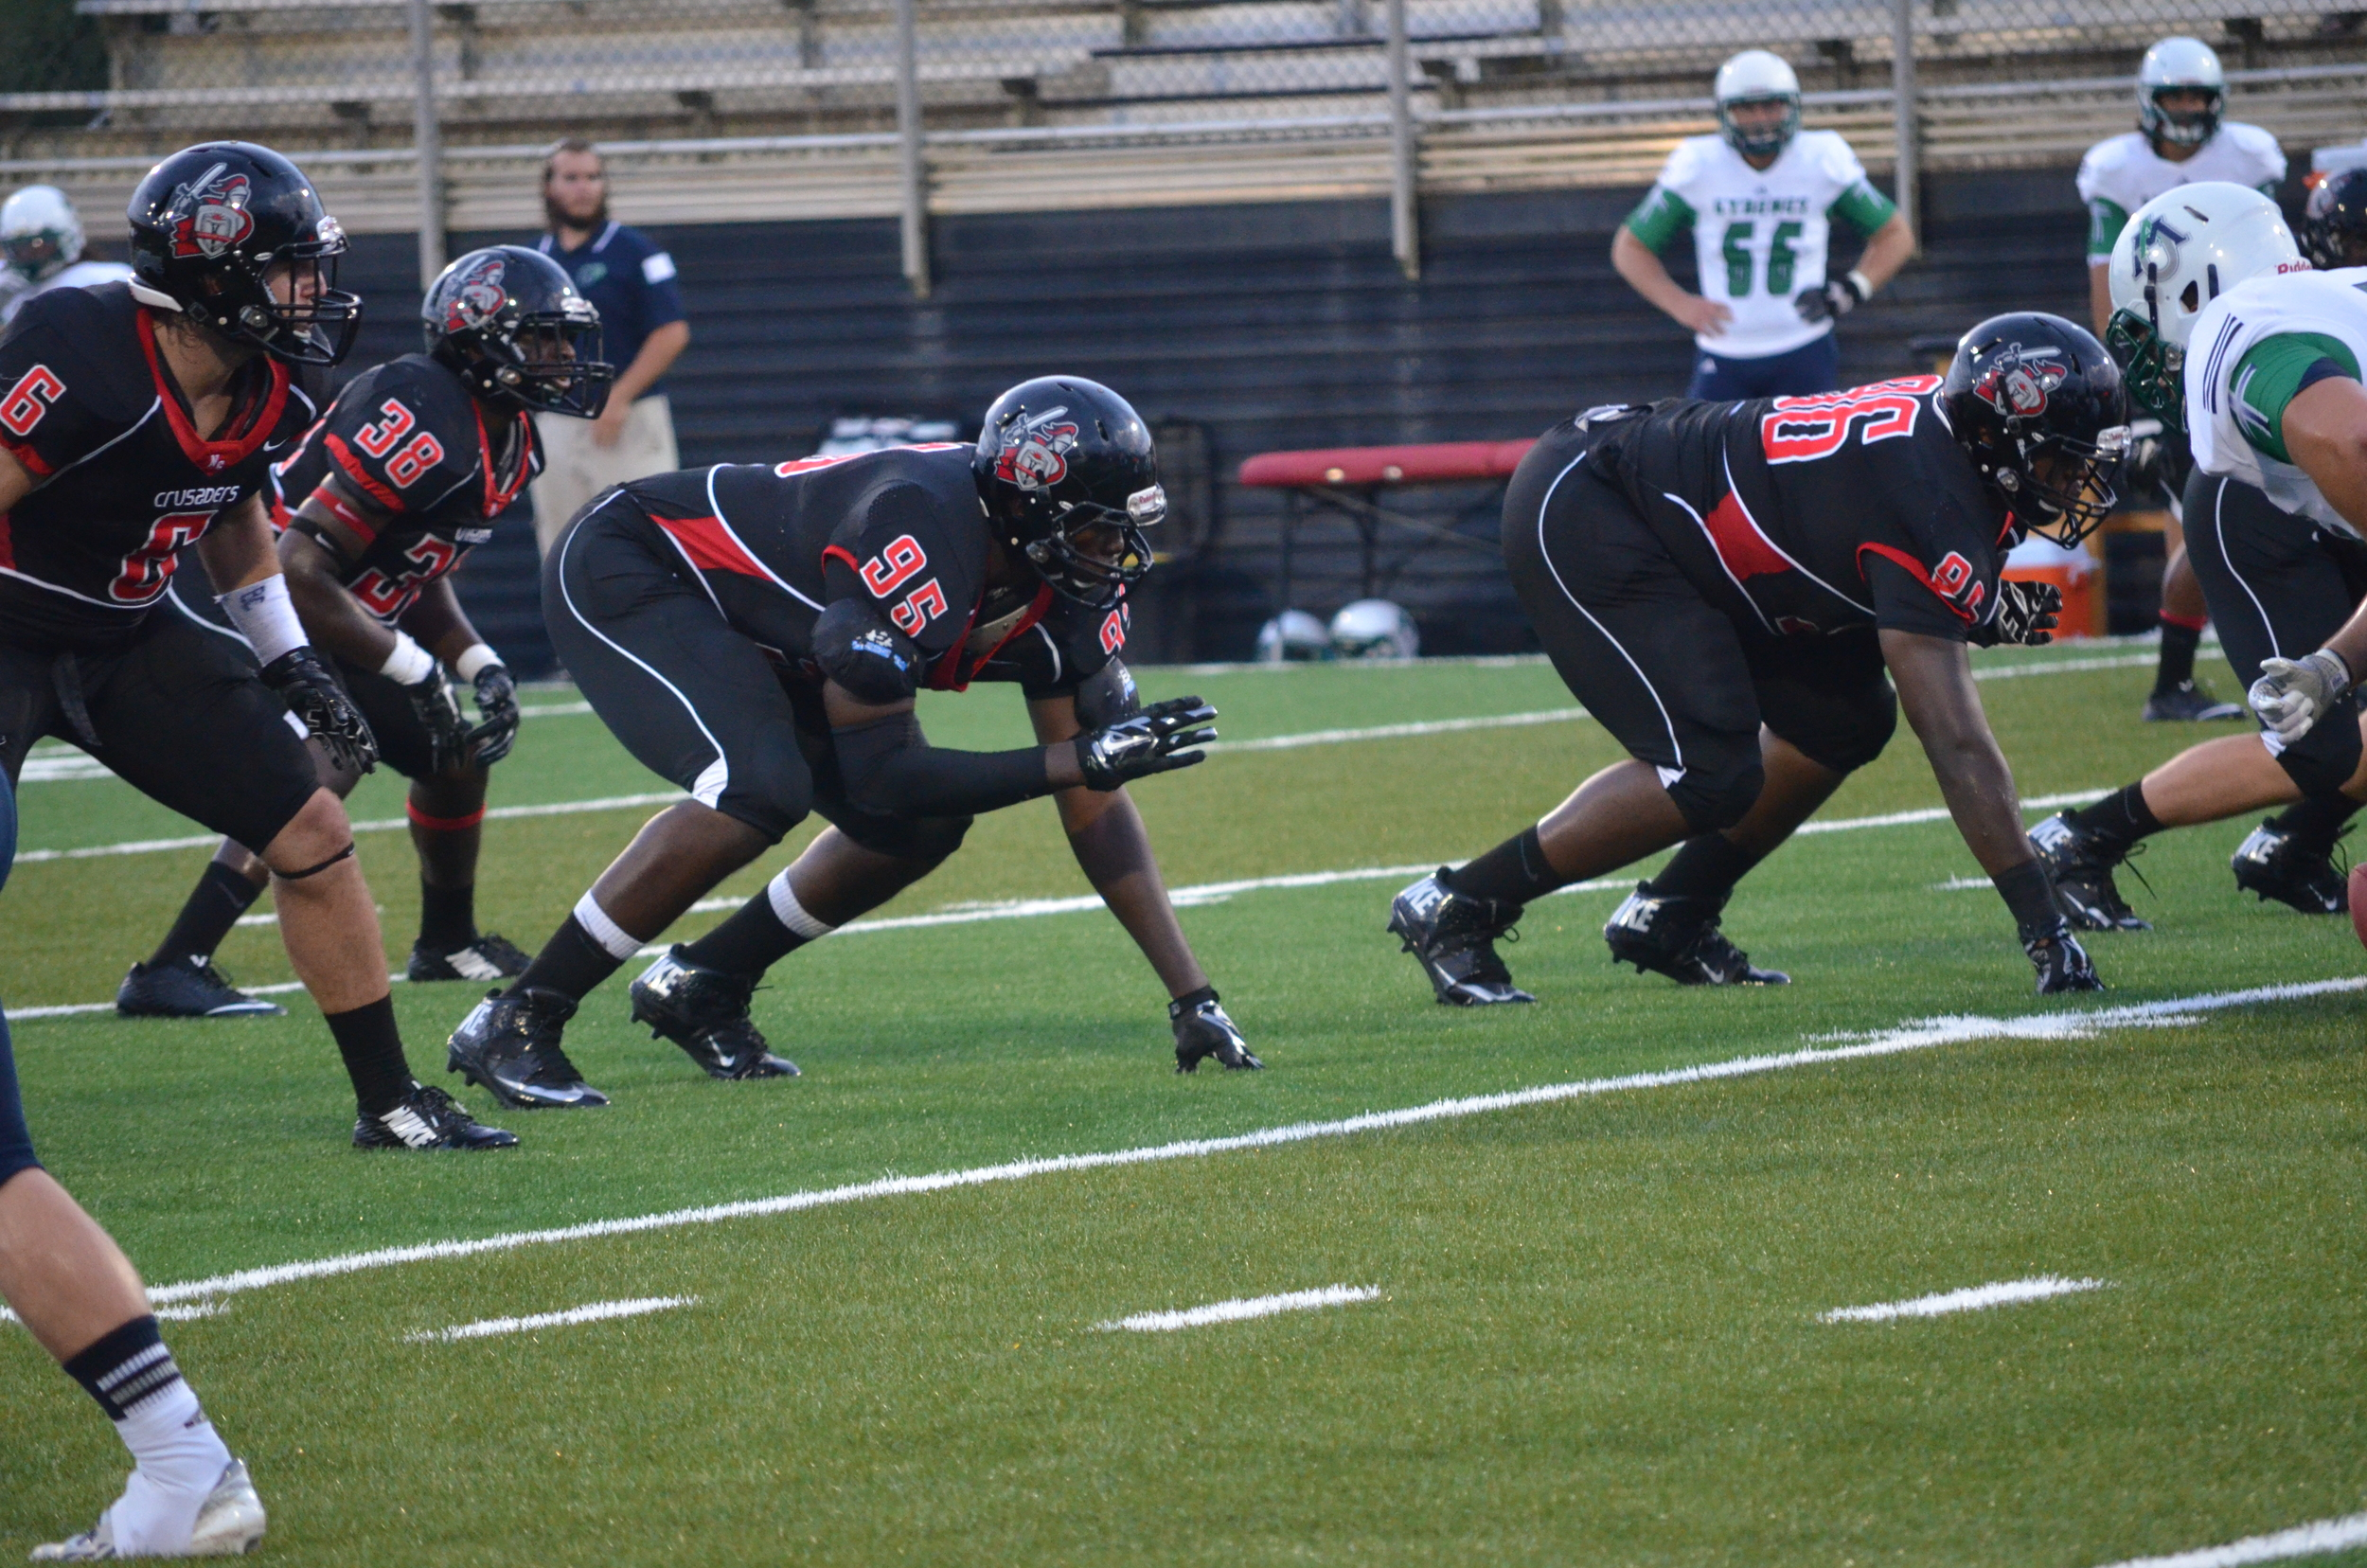 The team is ready on the line of scrimmage about to start the next down